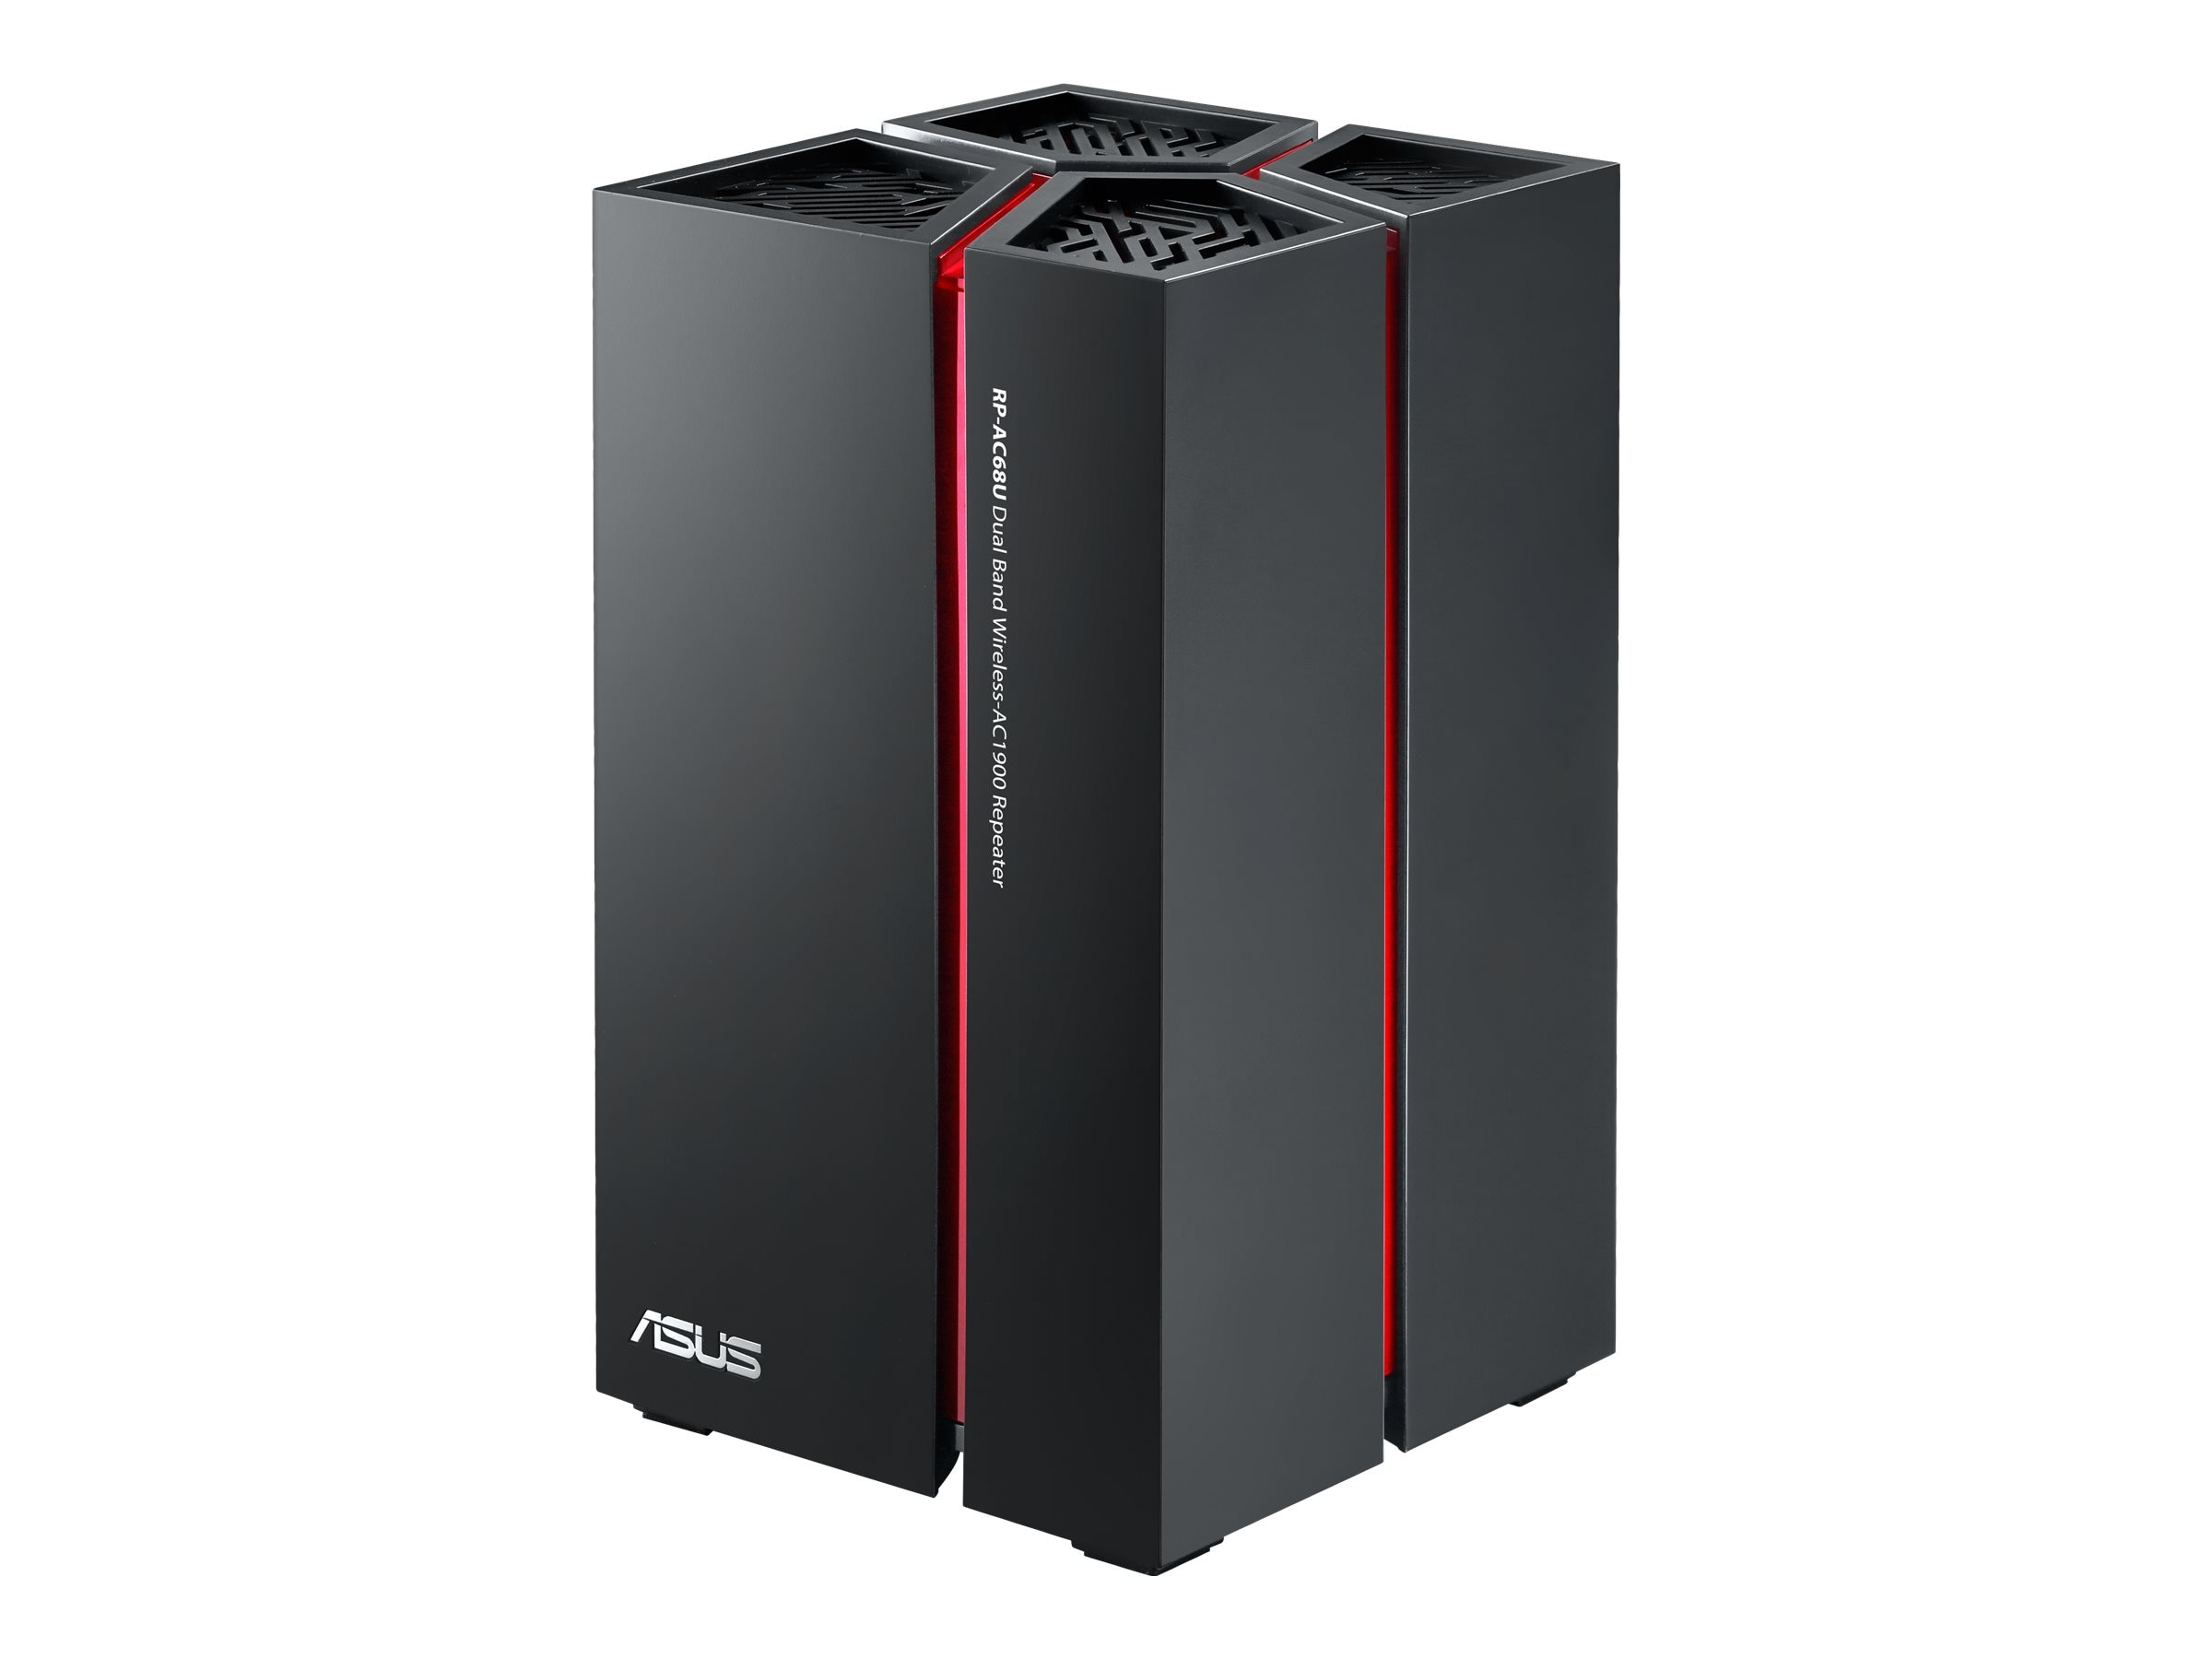 Asus Wireless AC1900 Repeater w USB 3.0 & 5xGbE, RP-AC68U